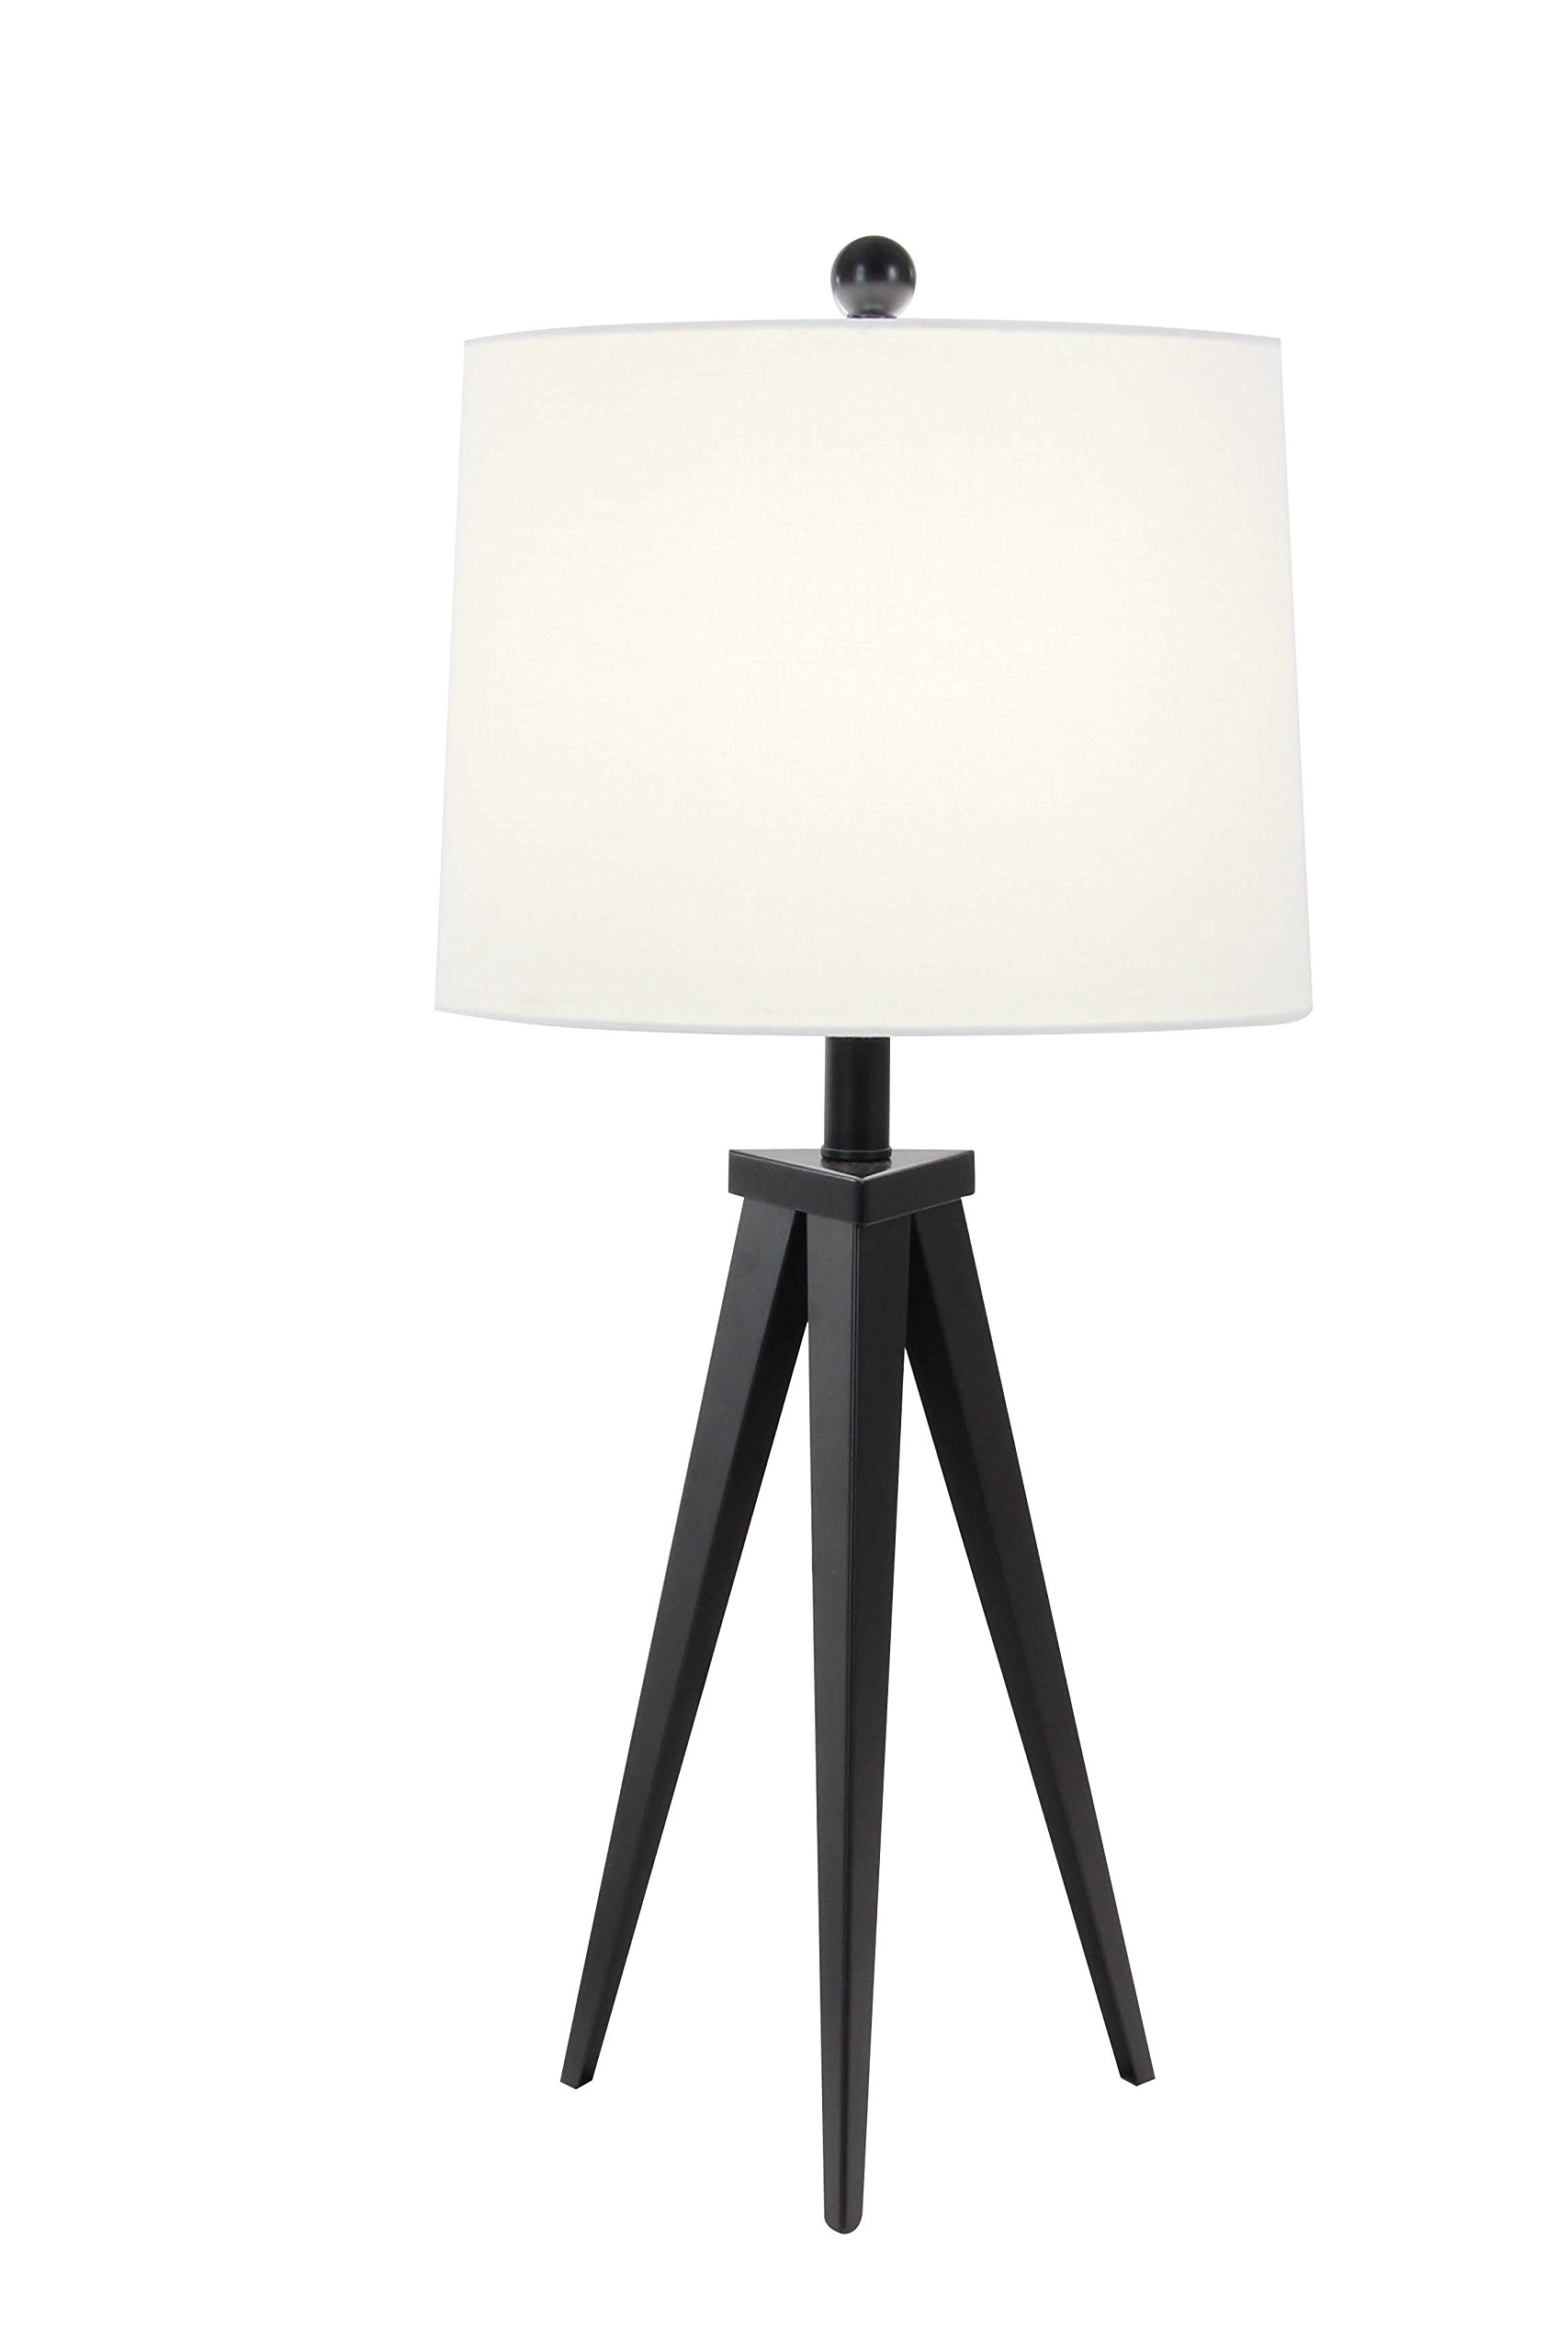 Deco 79 58652 Iron Tripod Table Lamp, White/Black